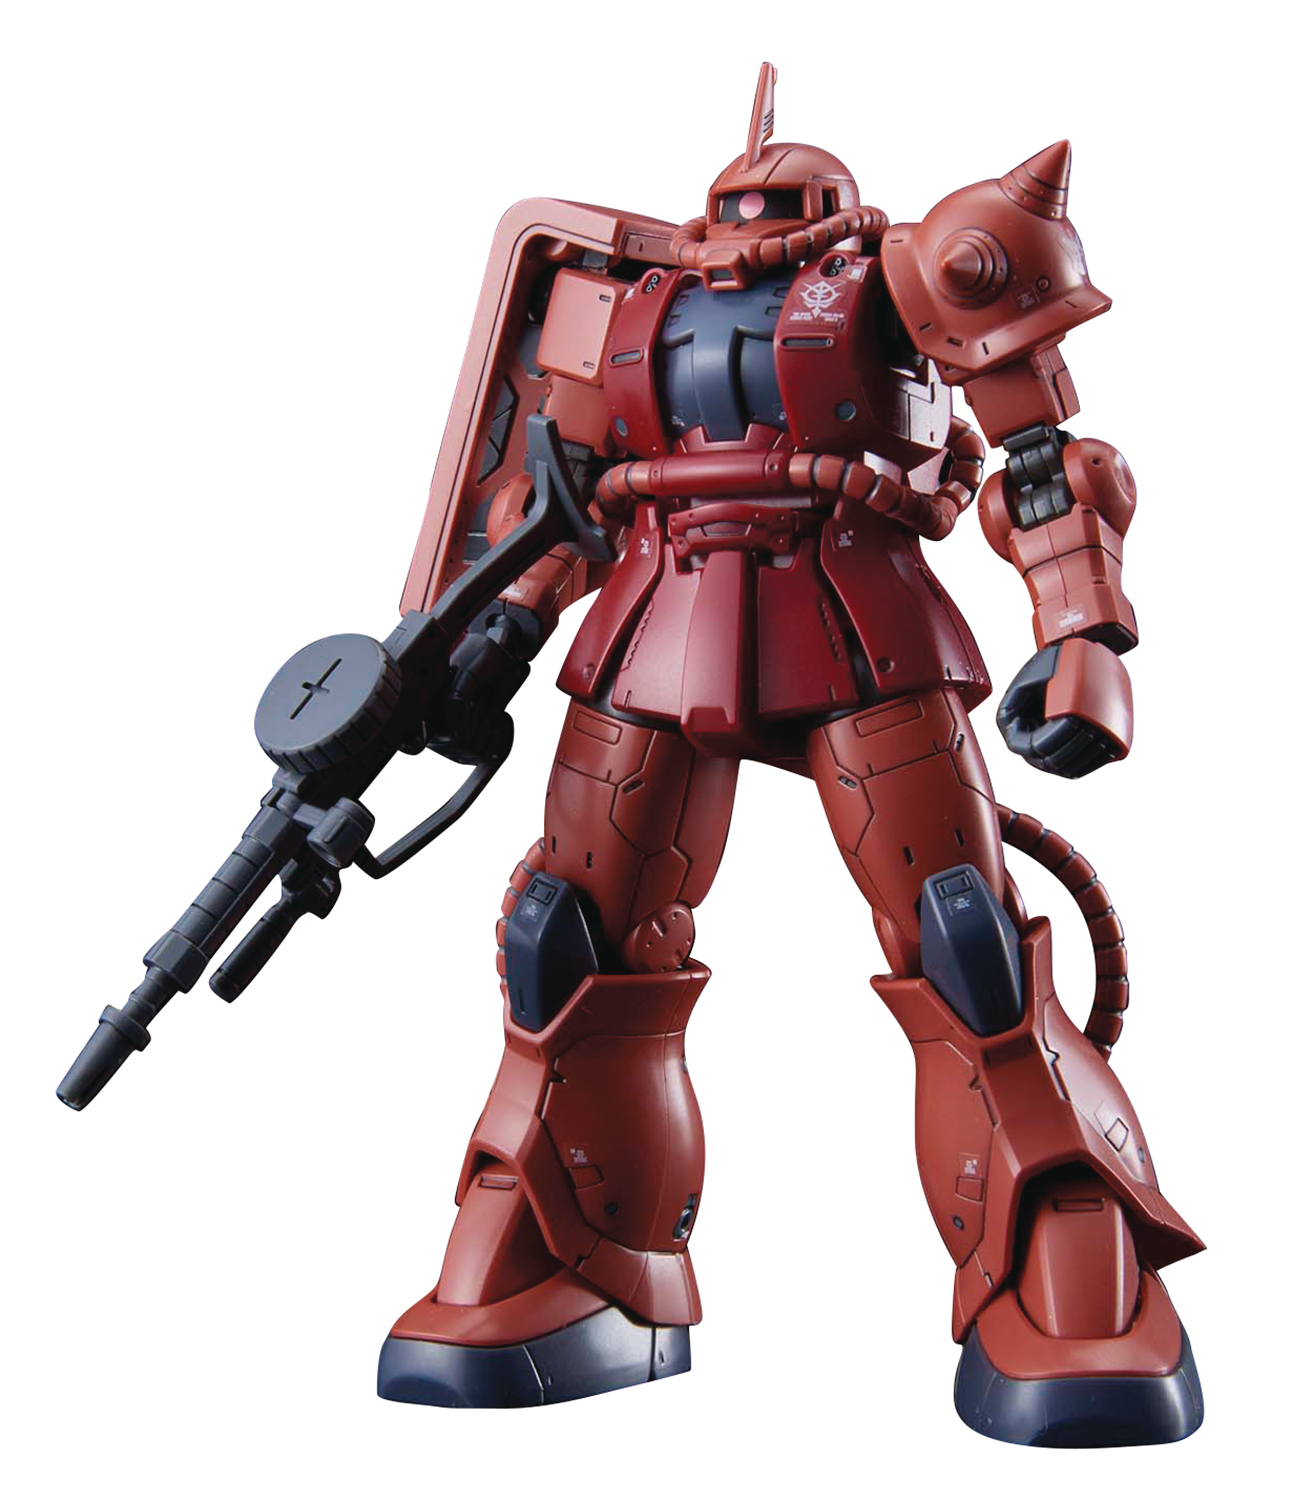 GUNDAM ORIGIN MS-06S ZAKU II CHAR RED COMET HG 1/144 MDL KIT